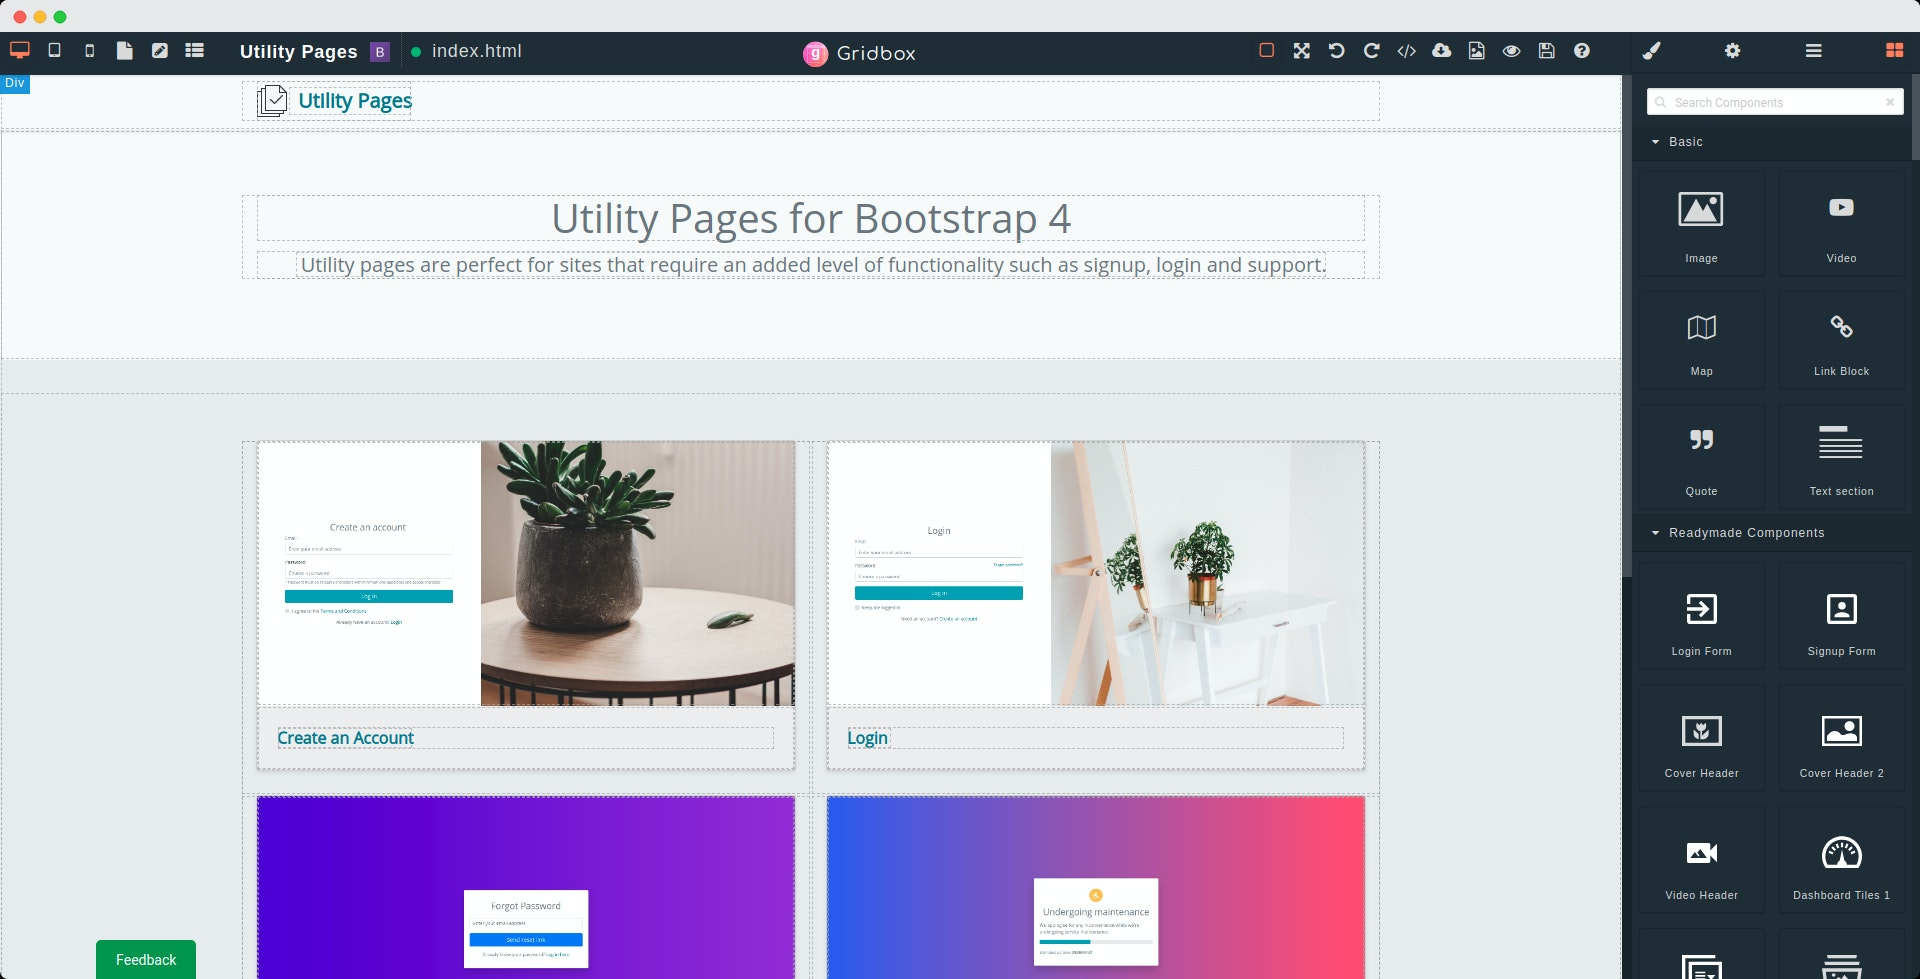 Gridbox v5.0 - Powerful visual bootstrap builder for designers & developers